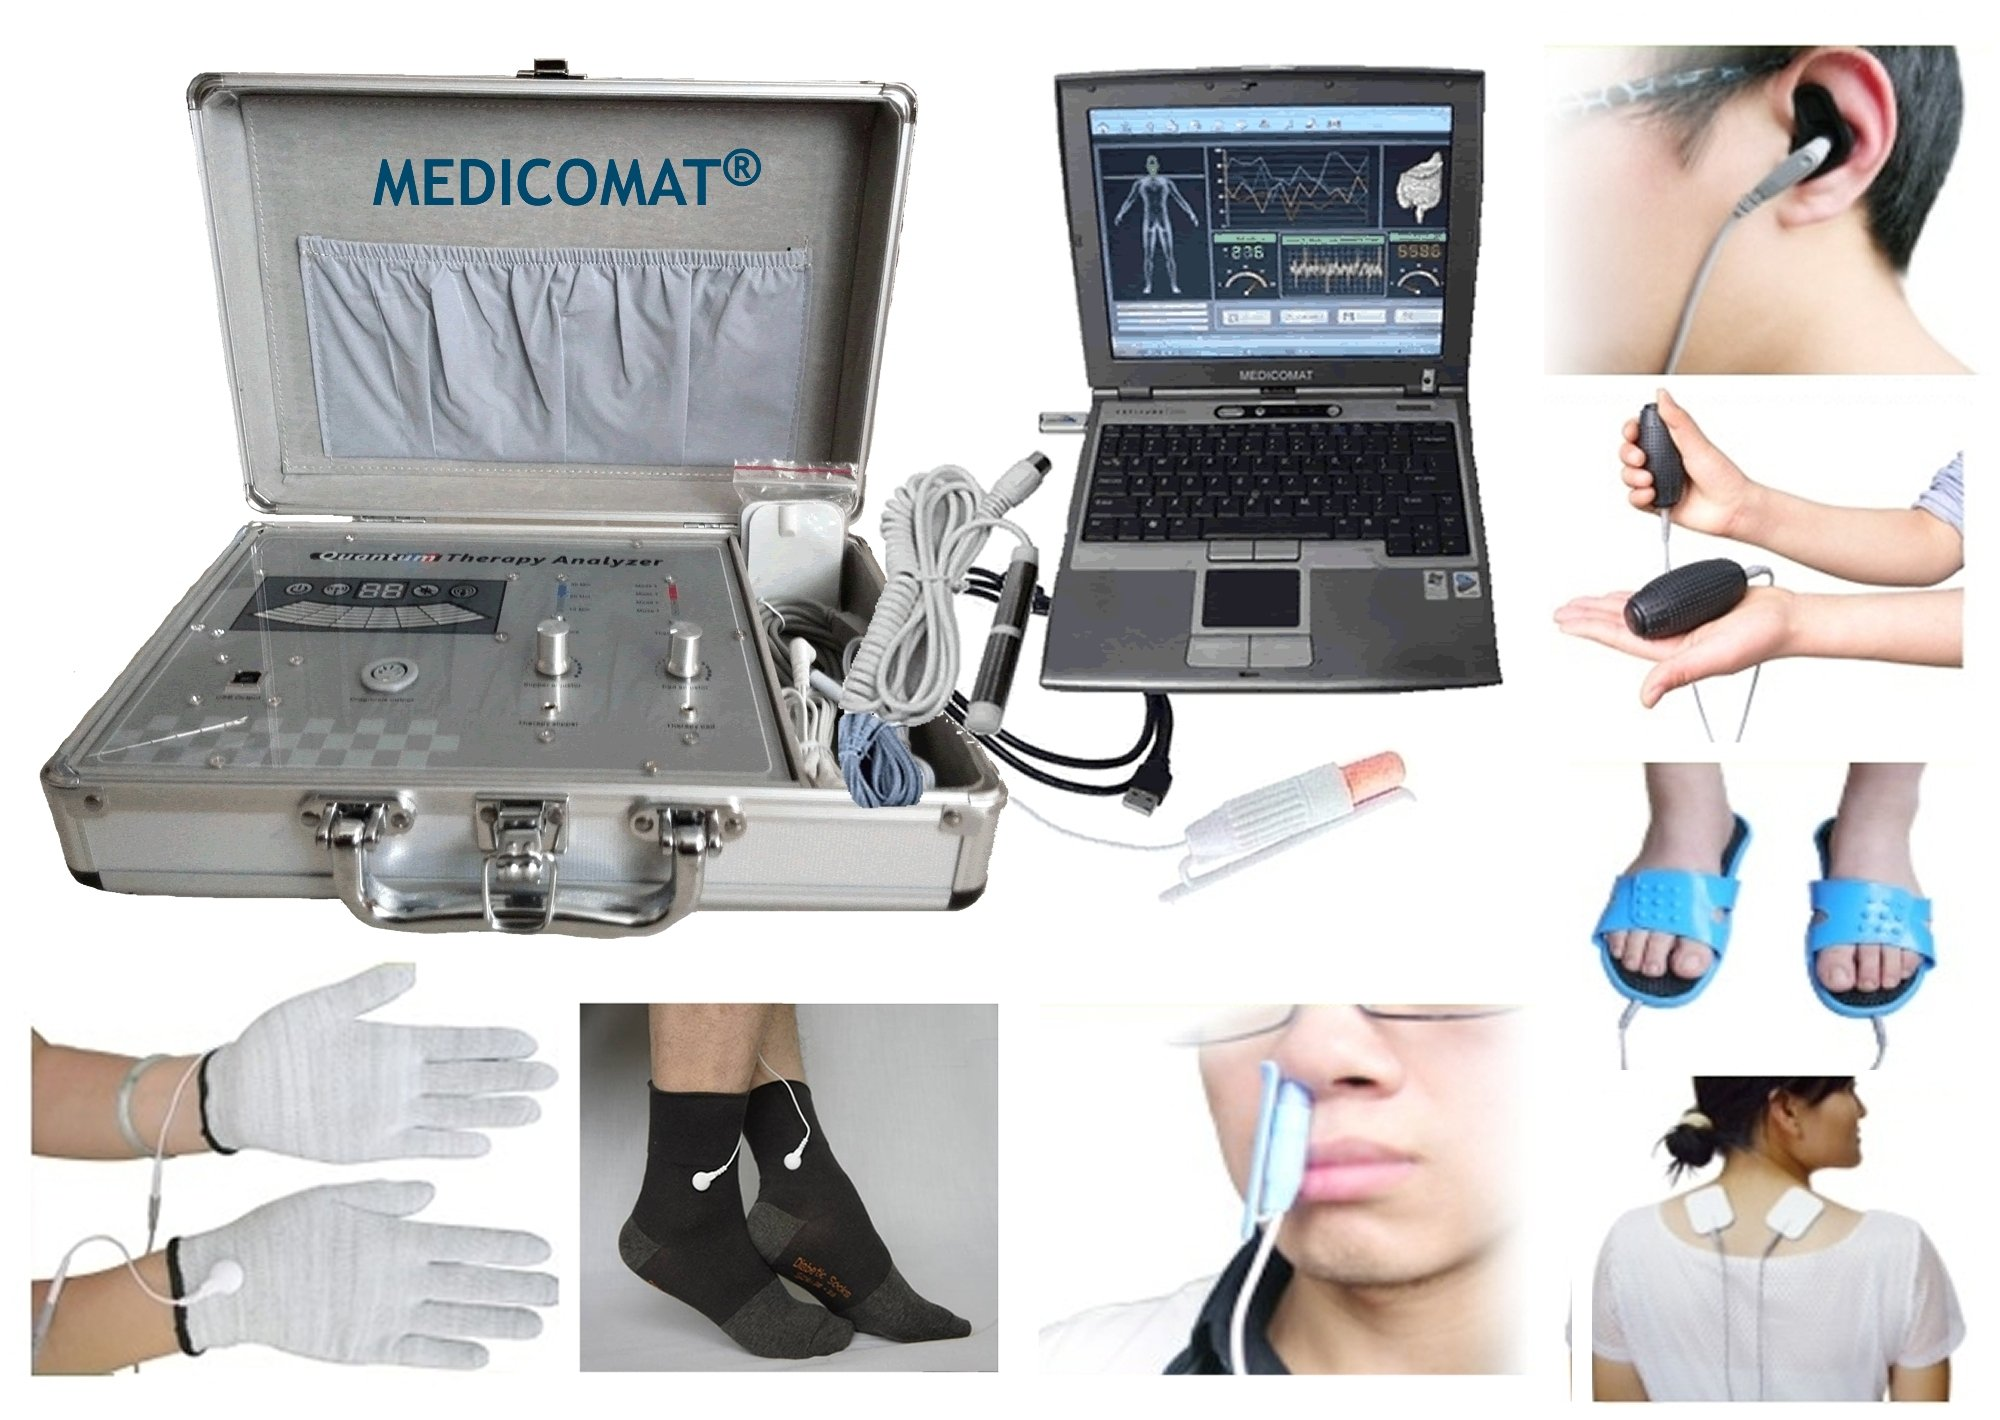 Laser Acupuncture Health Care Management Medicomat Computer Accessories by Medicomat